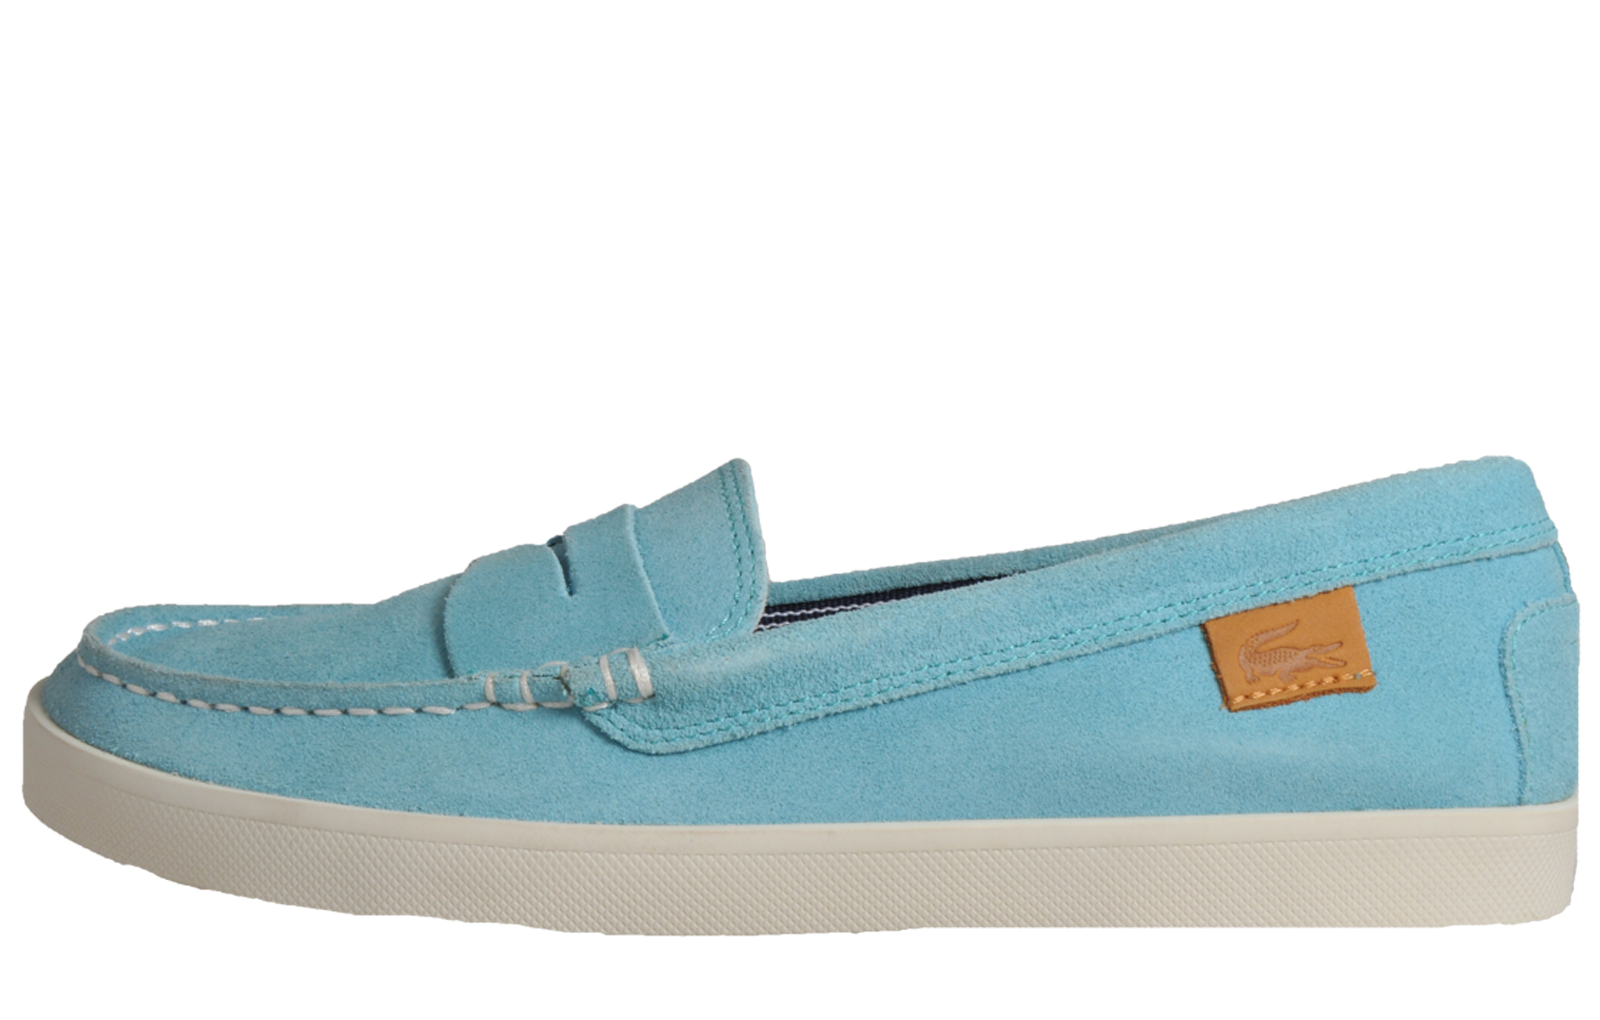 71c1e6655701 Lacoste Korlas 2 Women s Premium Suede Leather Moccasin Loafer Turquoise